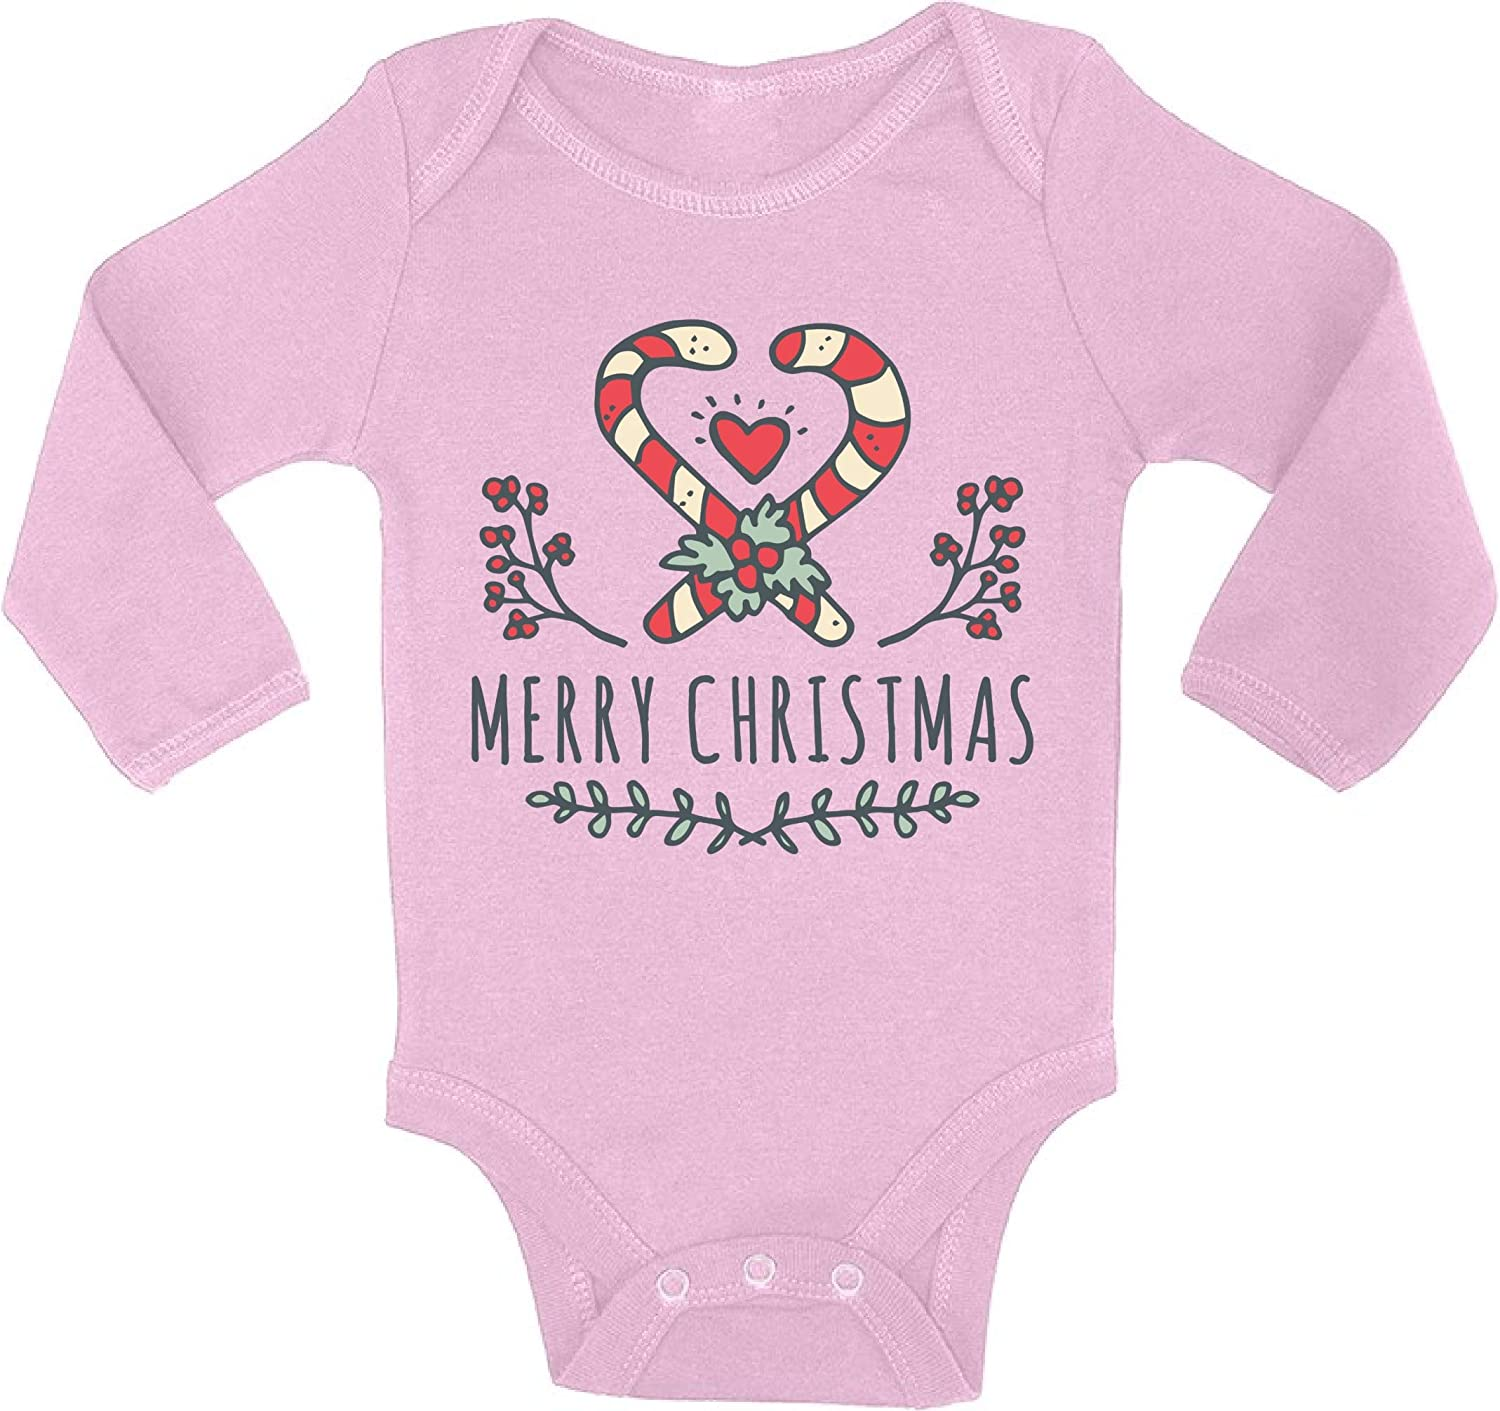 Awkward Styles Ugly Christmas Baby Outfit Bodysuit Xmas Candy Baby Romper